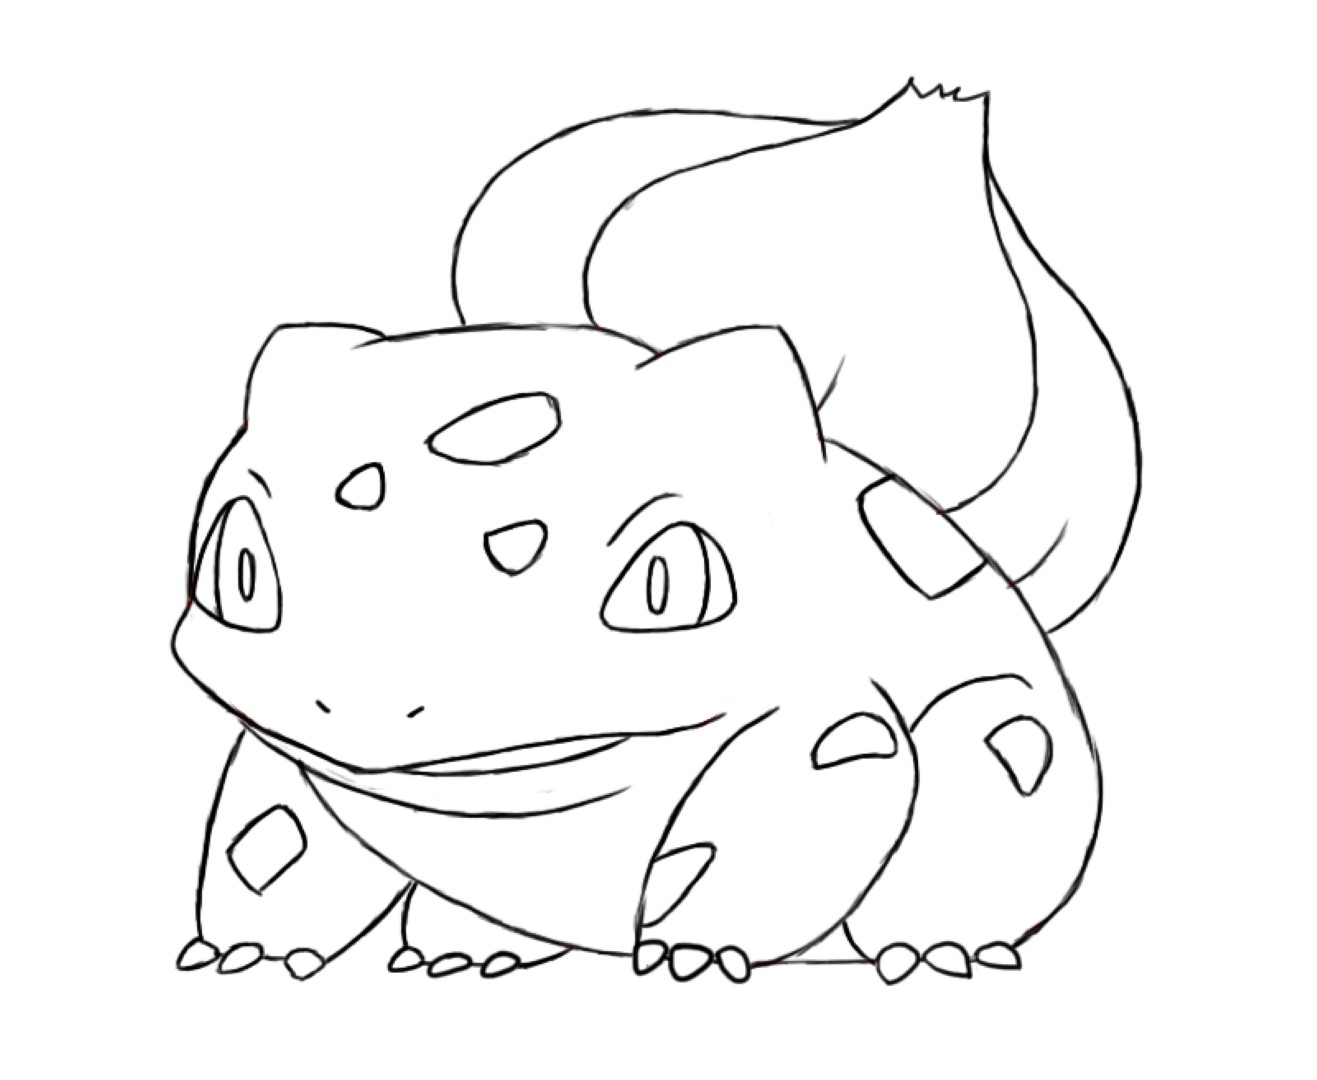 Bulbasaur Coloring Page at GetDrawings | Free download